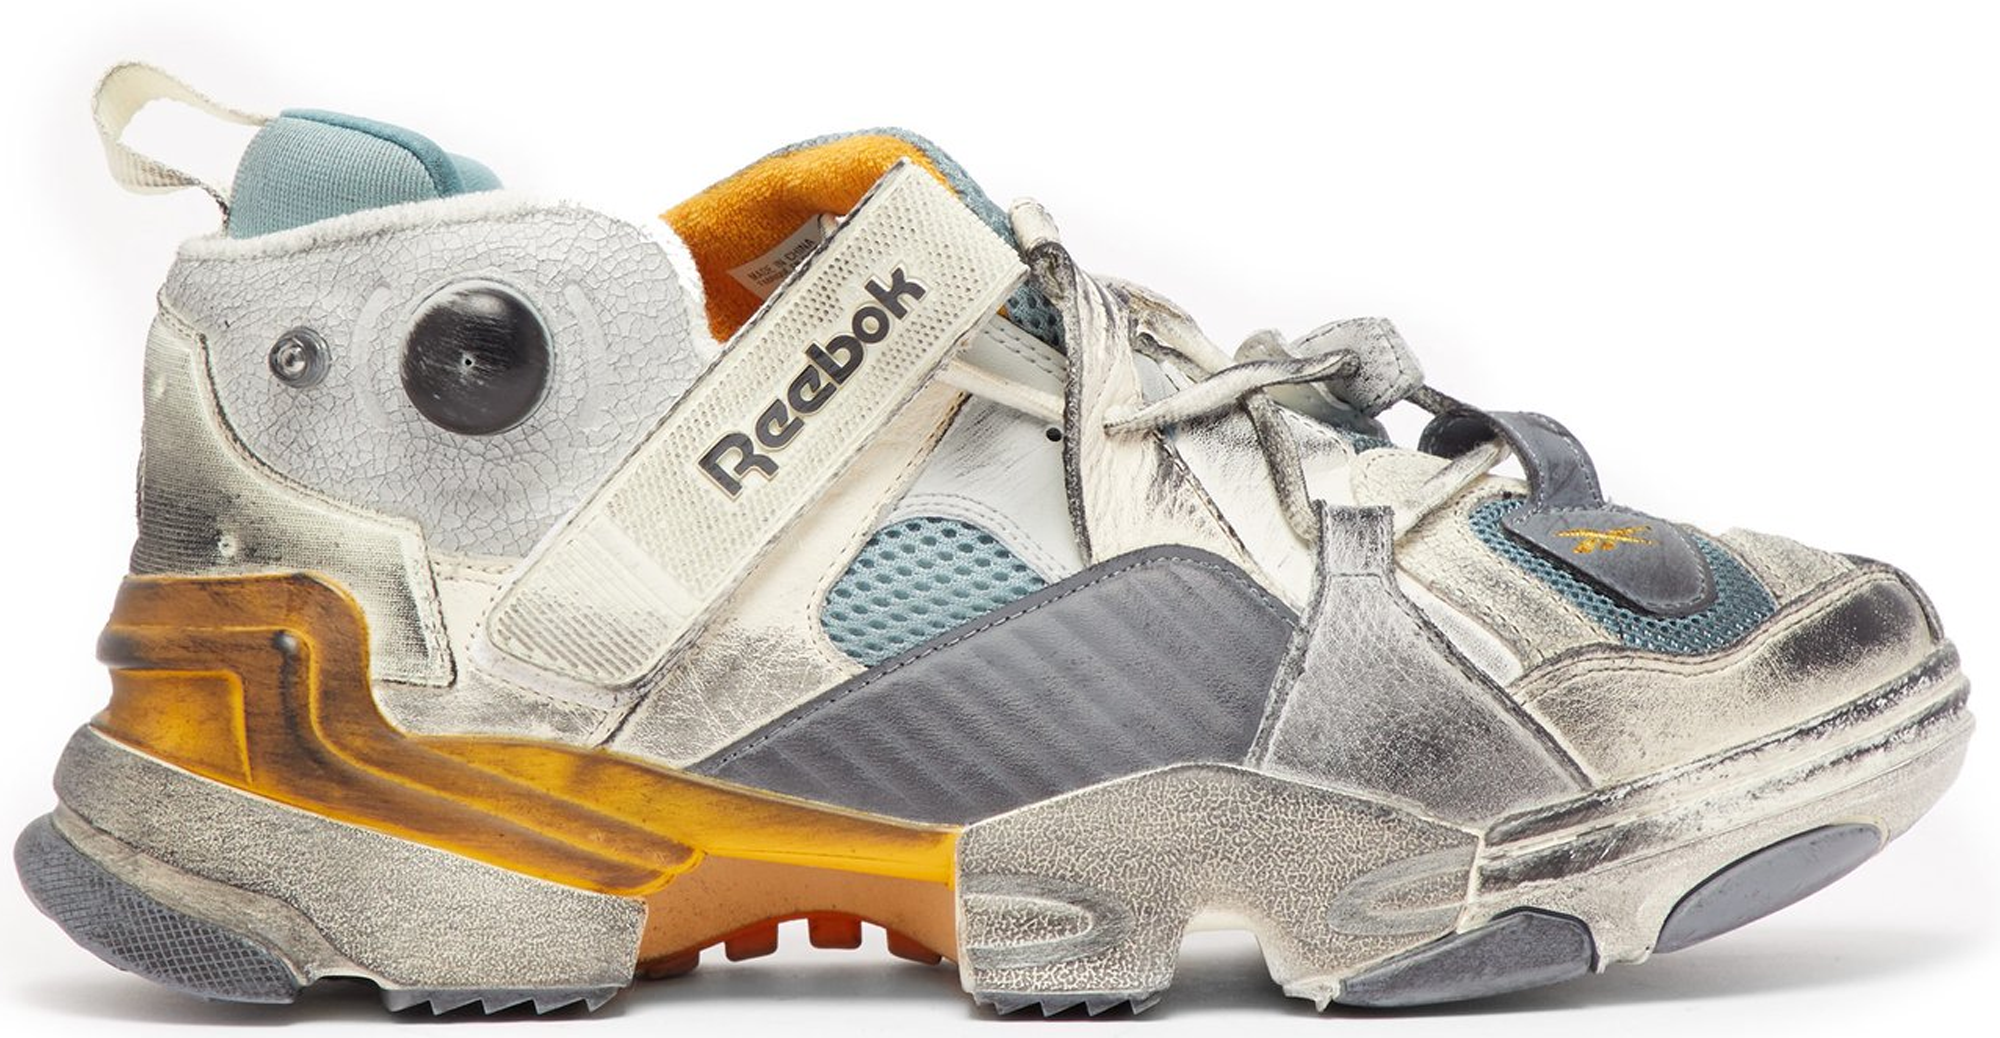 Reebok Genetically Modified Sneaker Vetements Grey สตรีท สนีกเกอร์ street sneaker